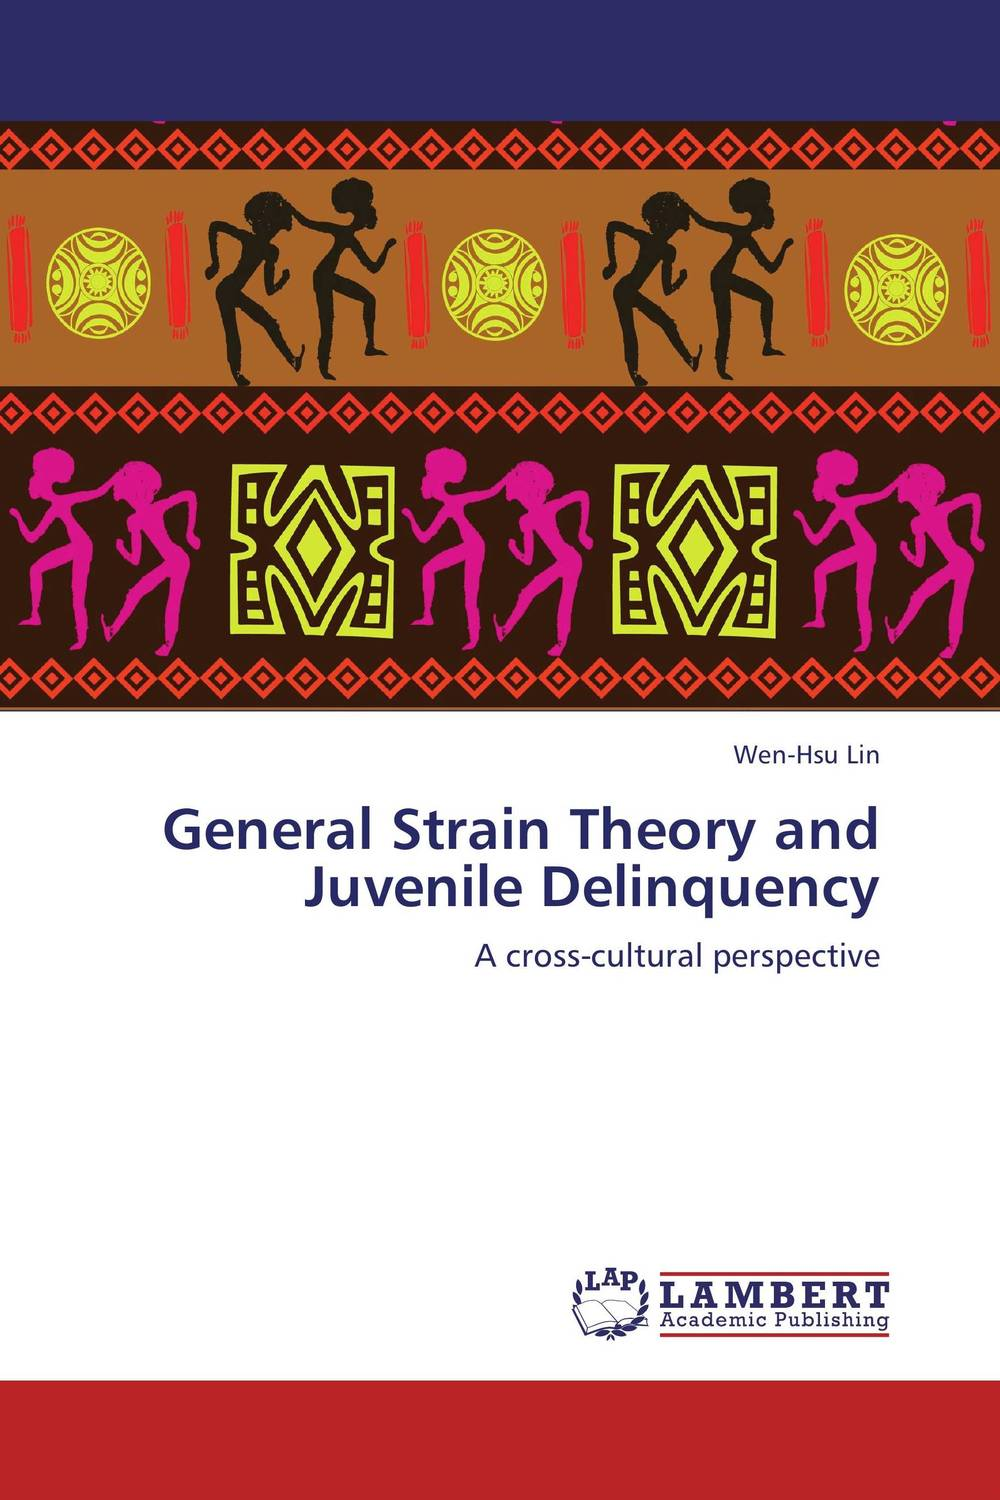 General Strain Theory and Juvenile Delinquency fatemeh shahpoori arani and hossein pirnajmuddin cultural studies theory into practice